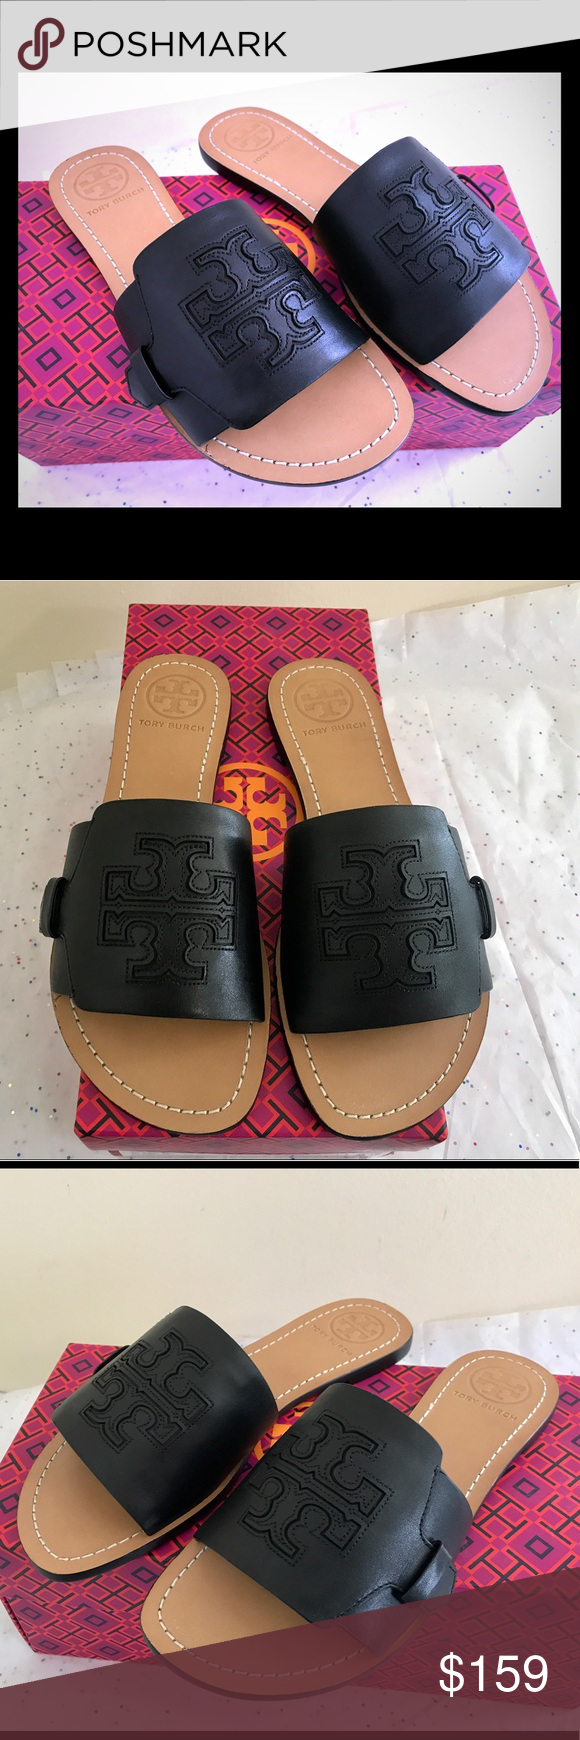 c9d6c96d36ad Tory Burch Melinda Slide Sandals Brand new in box ✨they run half a size  smaller ✨ Tory Burch Shoes Sandals